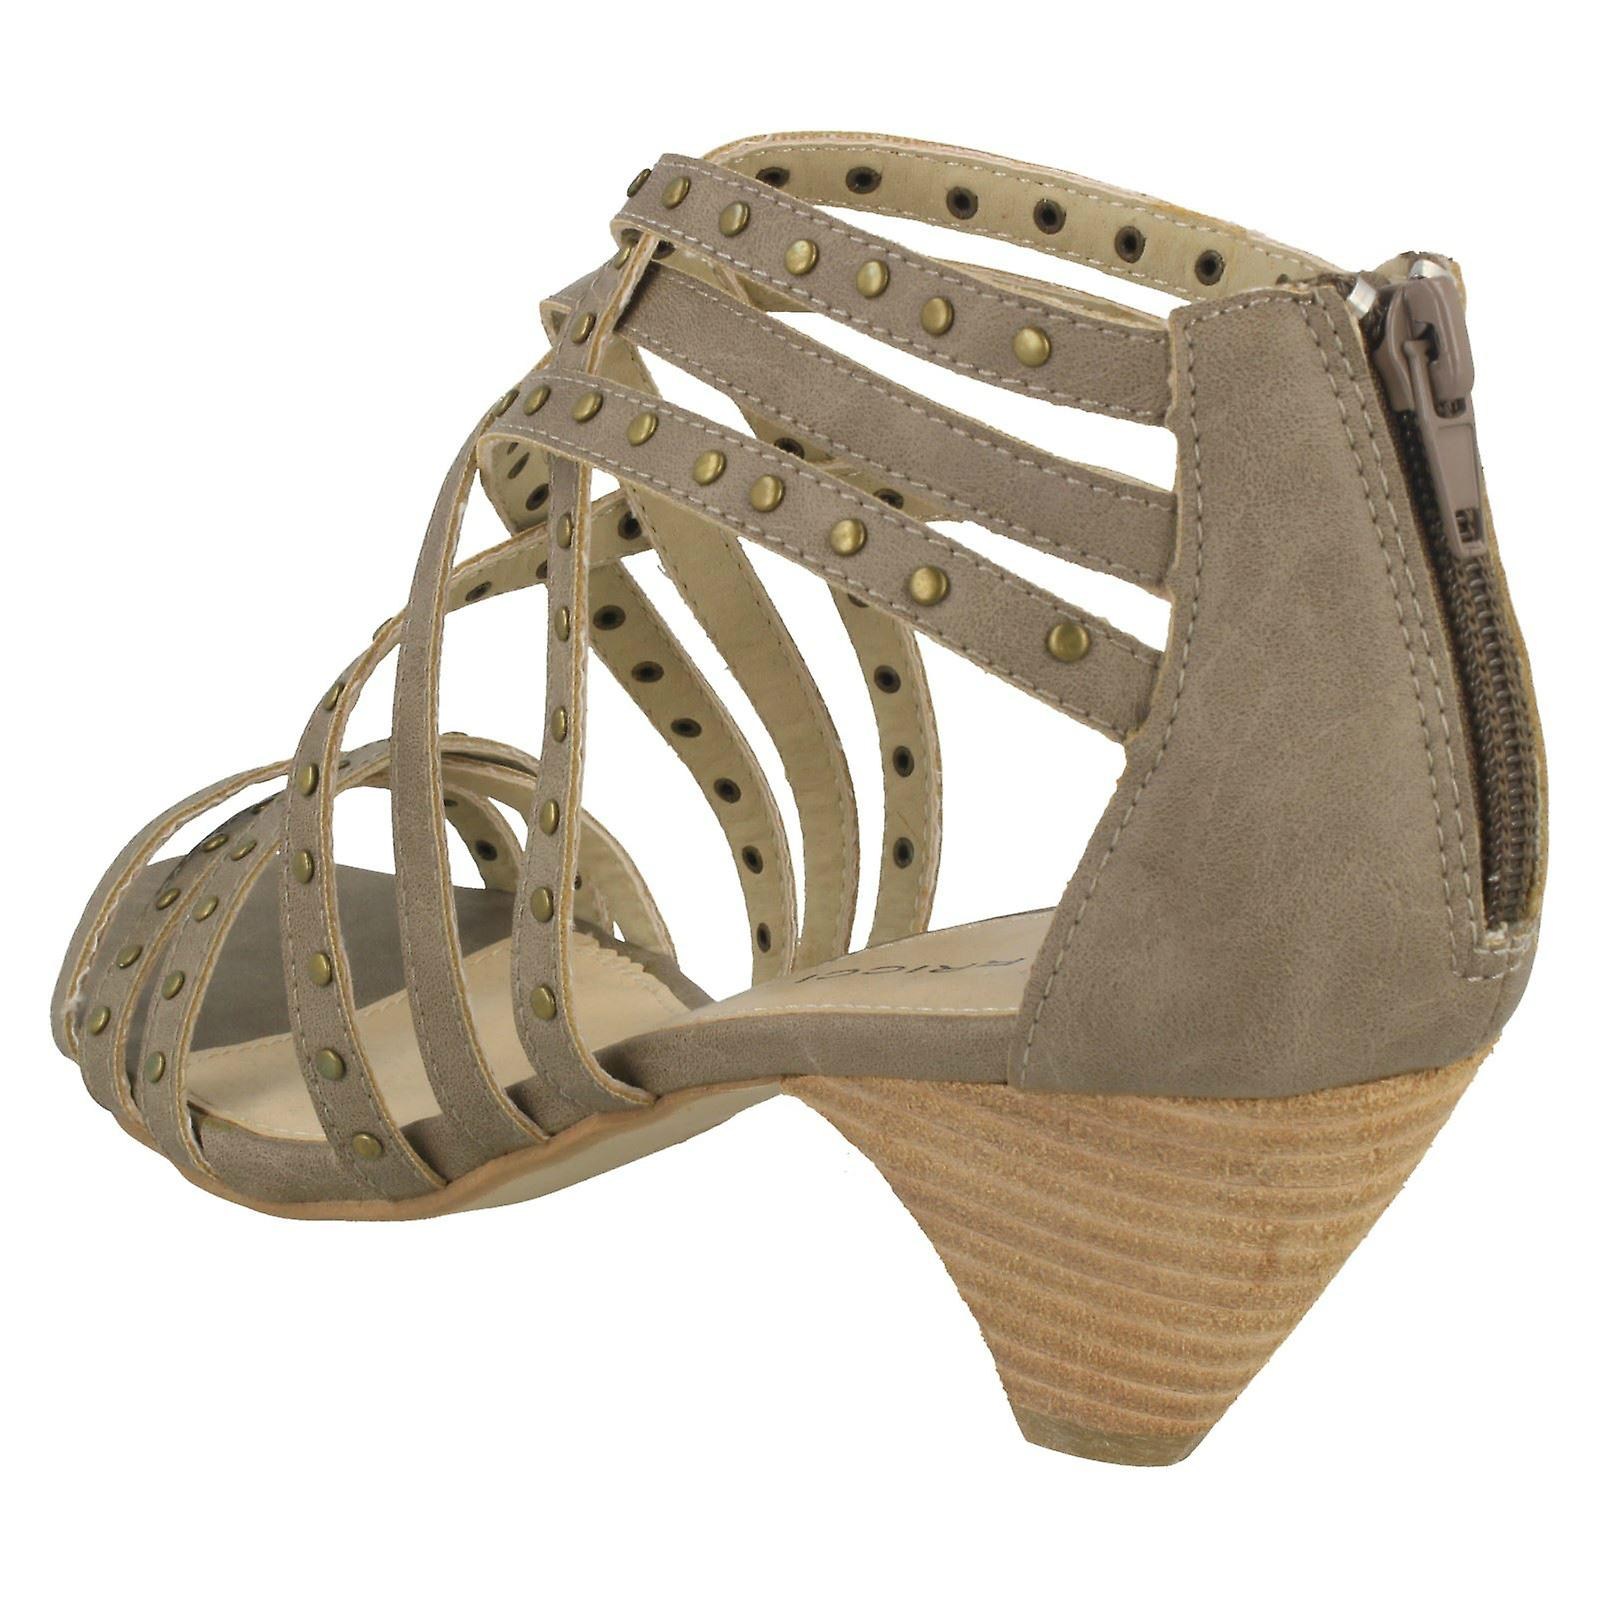 Ladies Barricci Heeled Sandals - Gratis verzending BiKv02